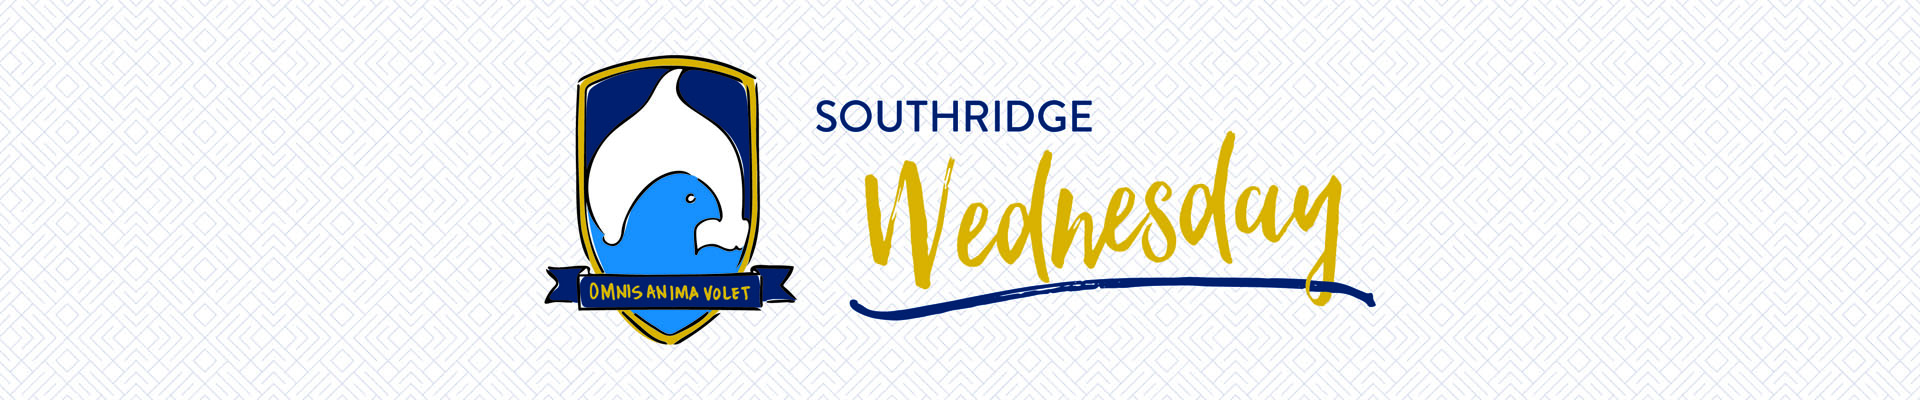 Southridge Wednesday